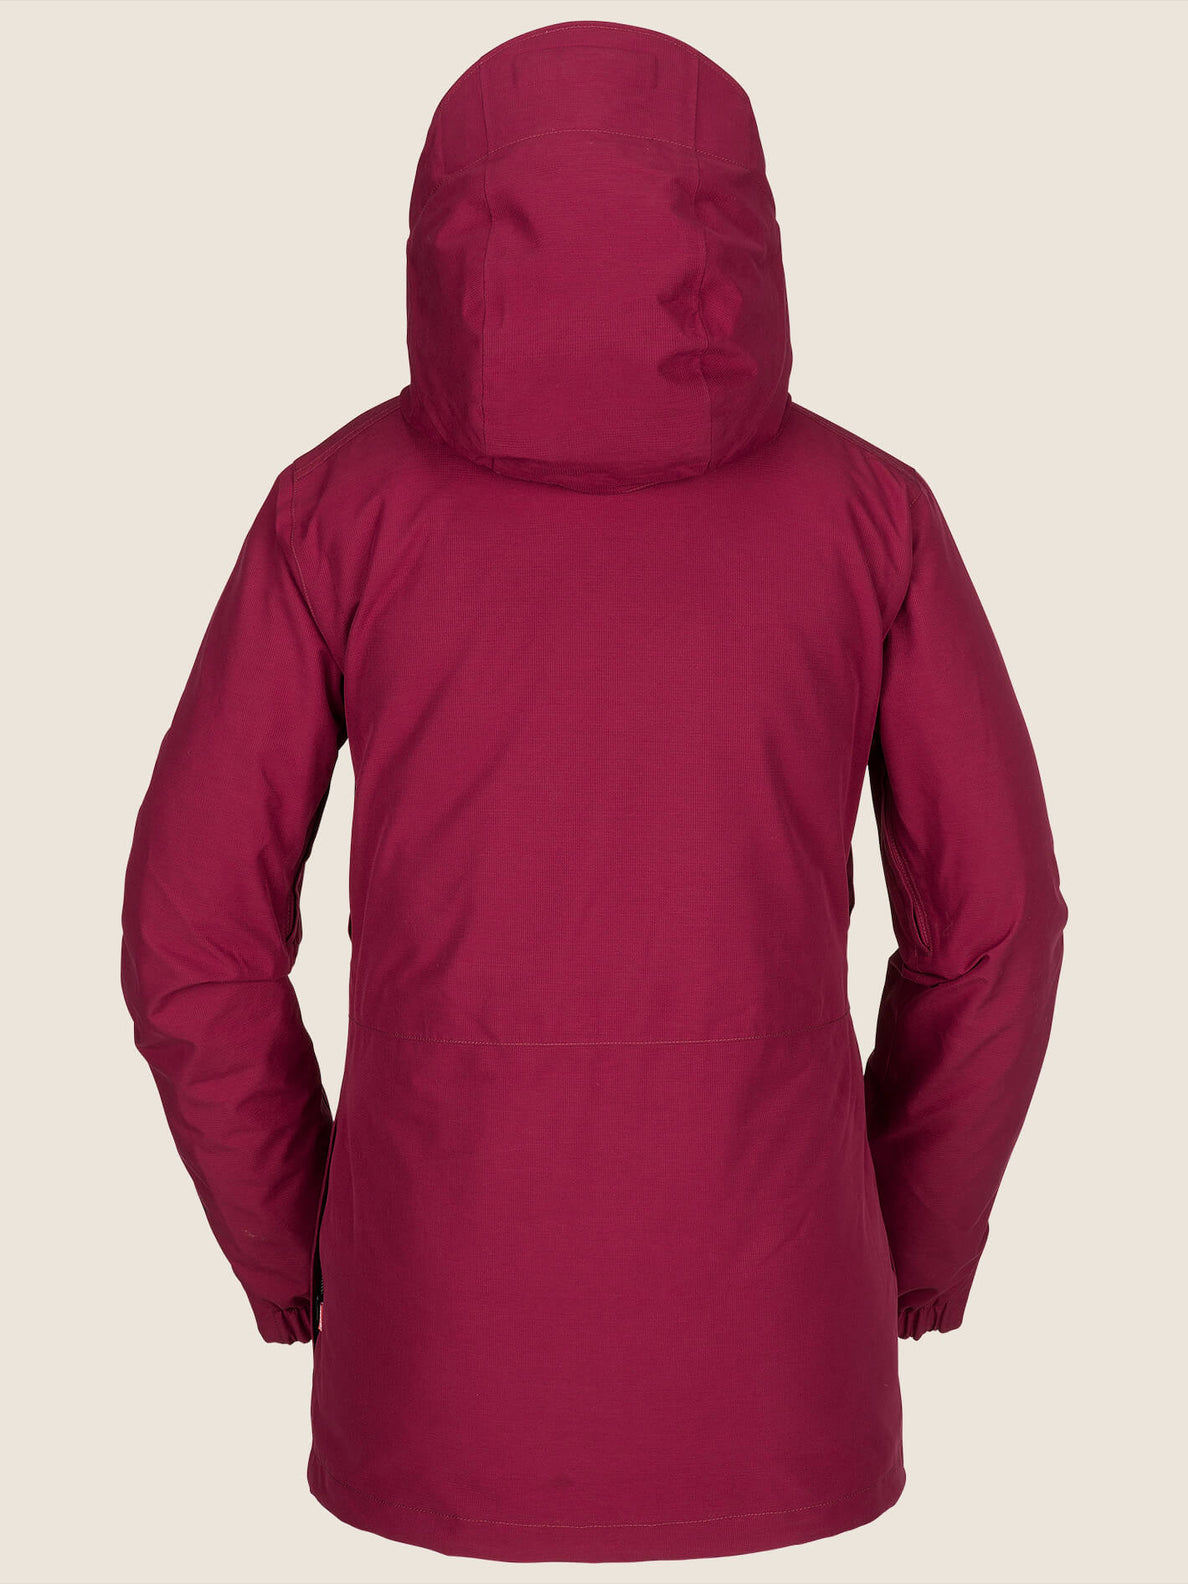 Iris 3-In-1 Gore-tex Jacket In Magenta, Back View